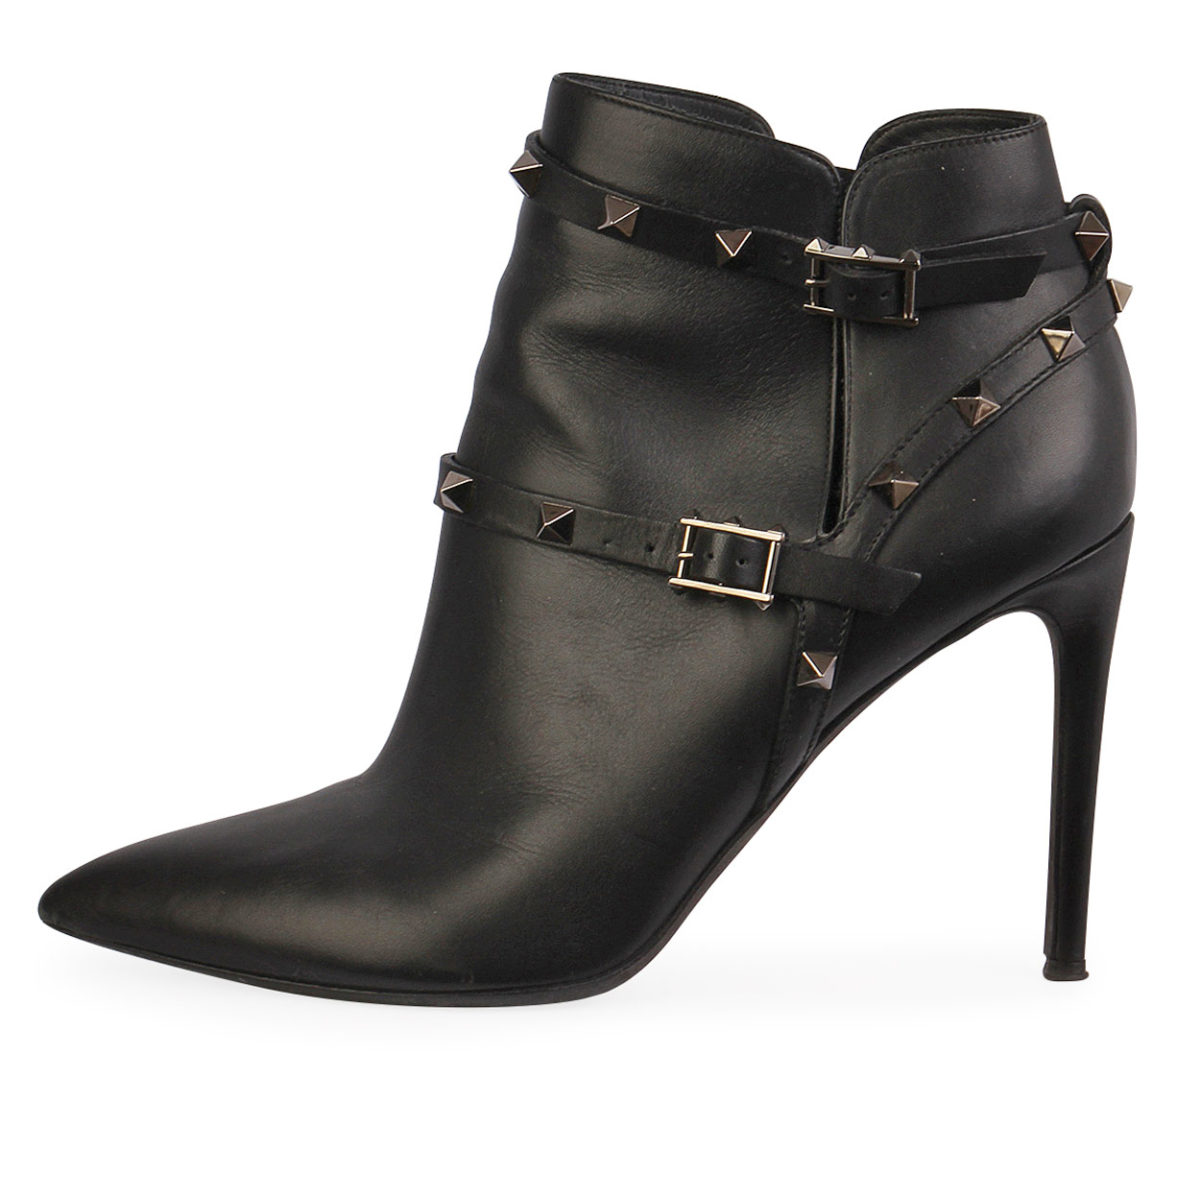 VALENTINO Leather Rockstud Ankle Boots Black - S: 39 5 (6)